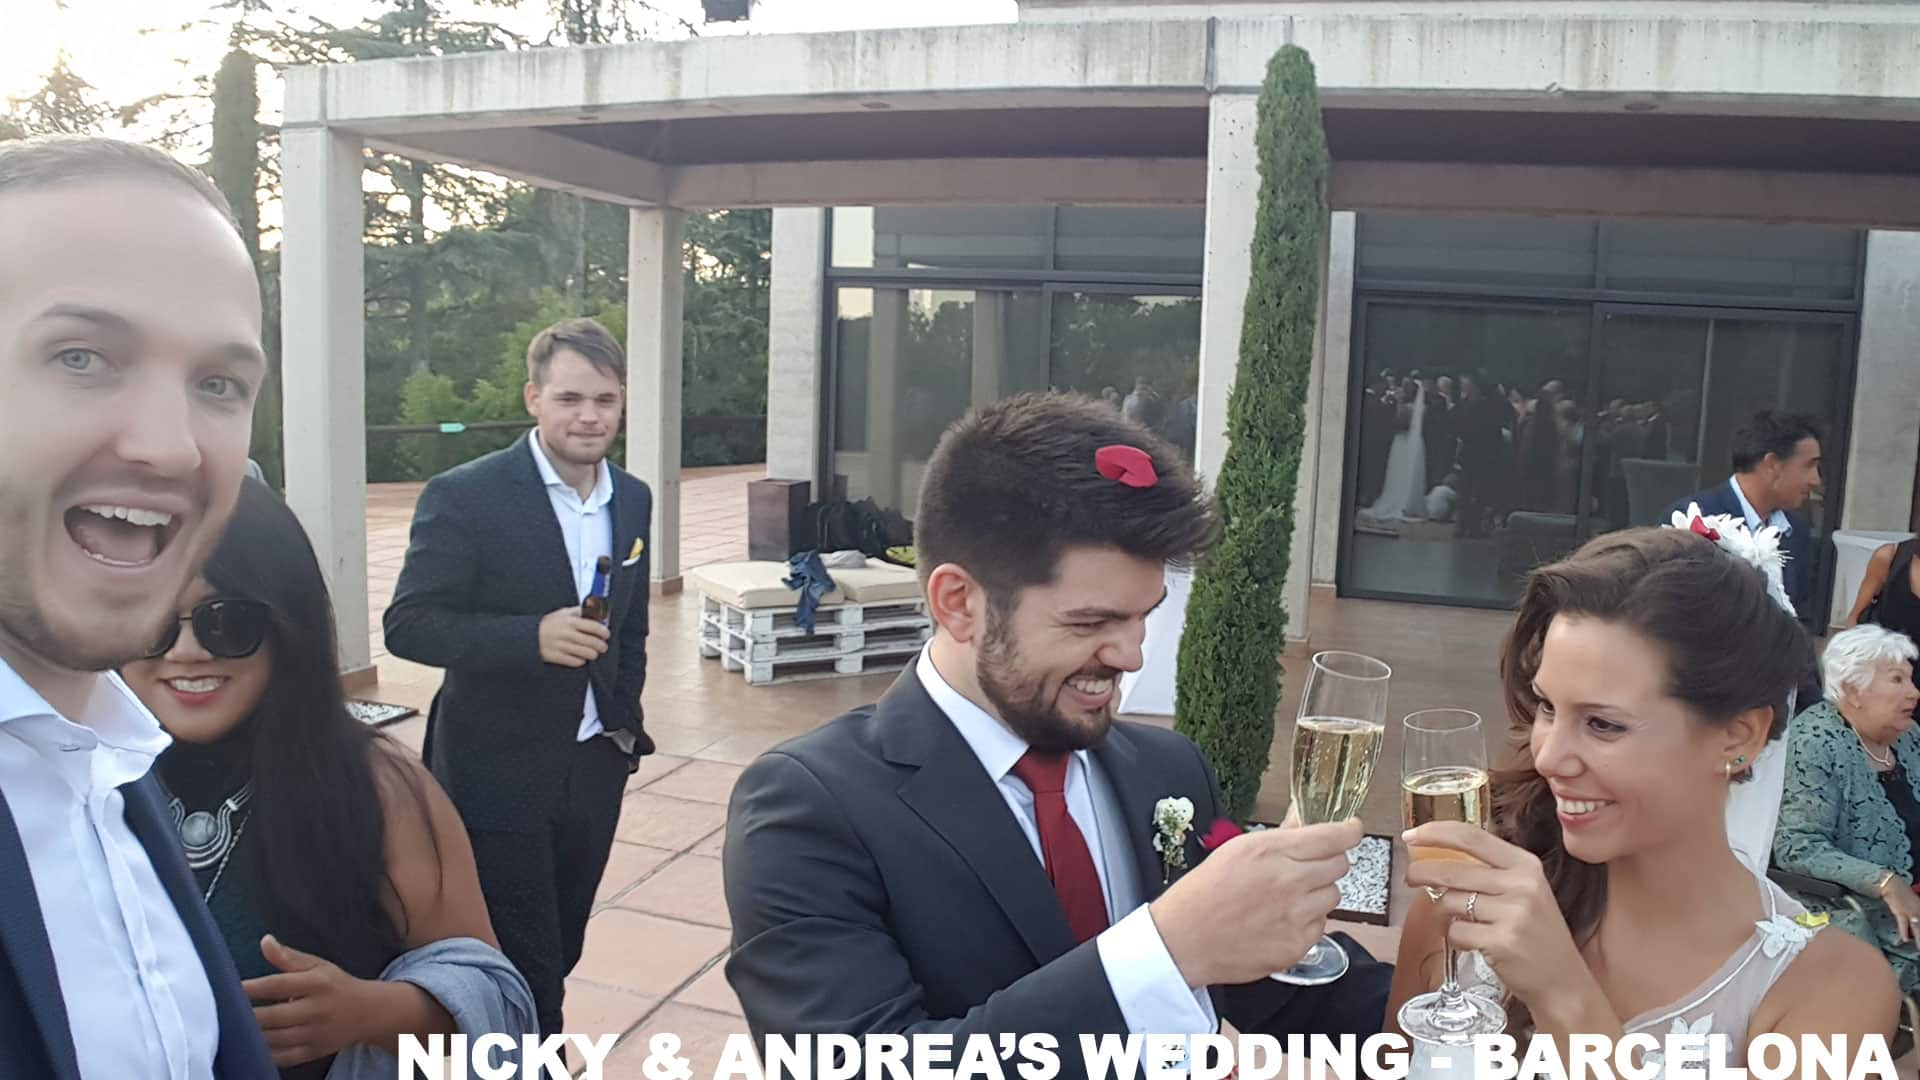 Andrea & Nicky's Wedding